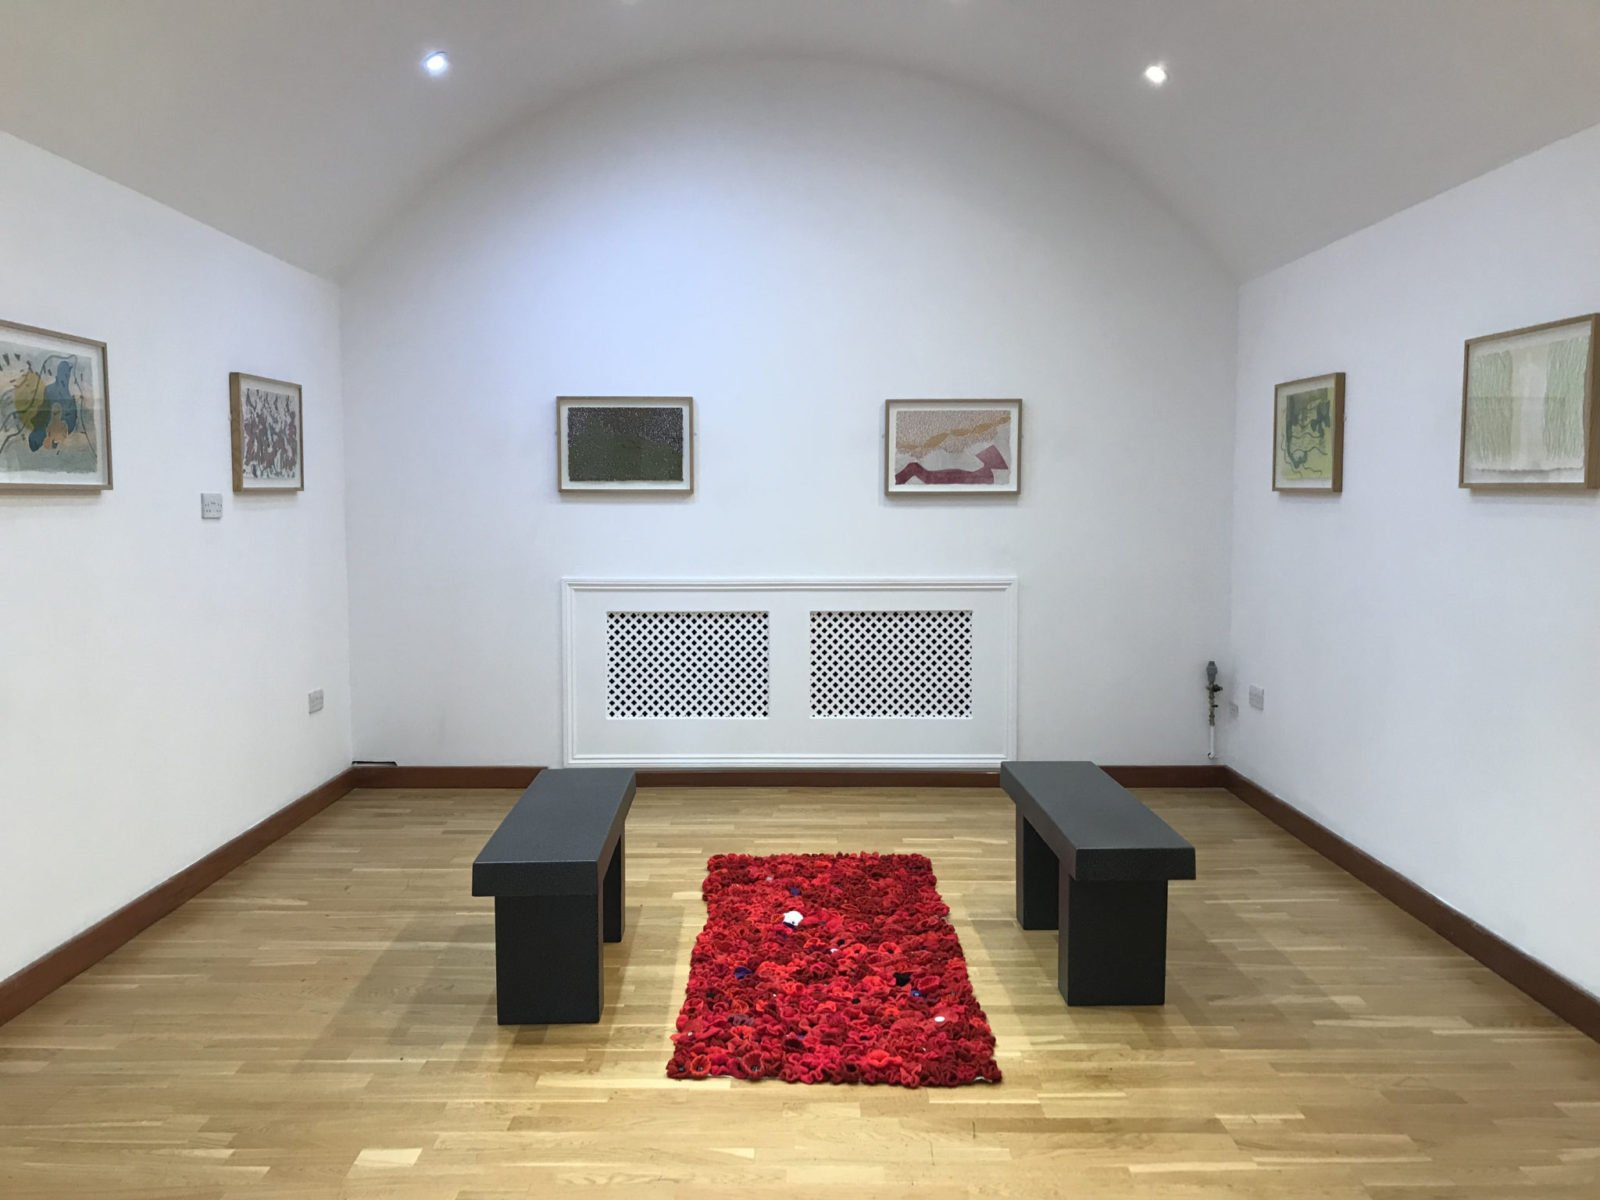 Ruth Dent's Britten War Requiem Prints exhibited at the Royal Engineers Museum, with a carpet of poppies